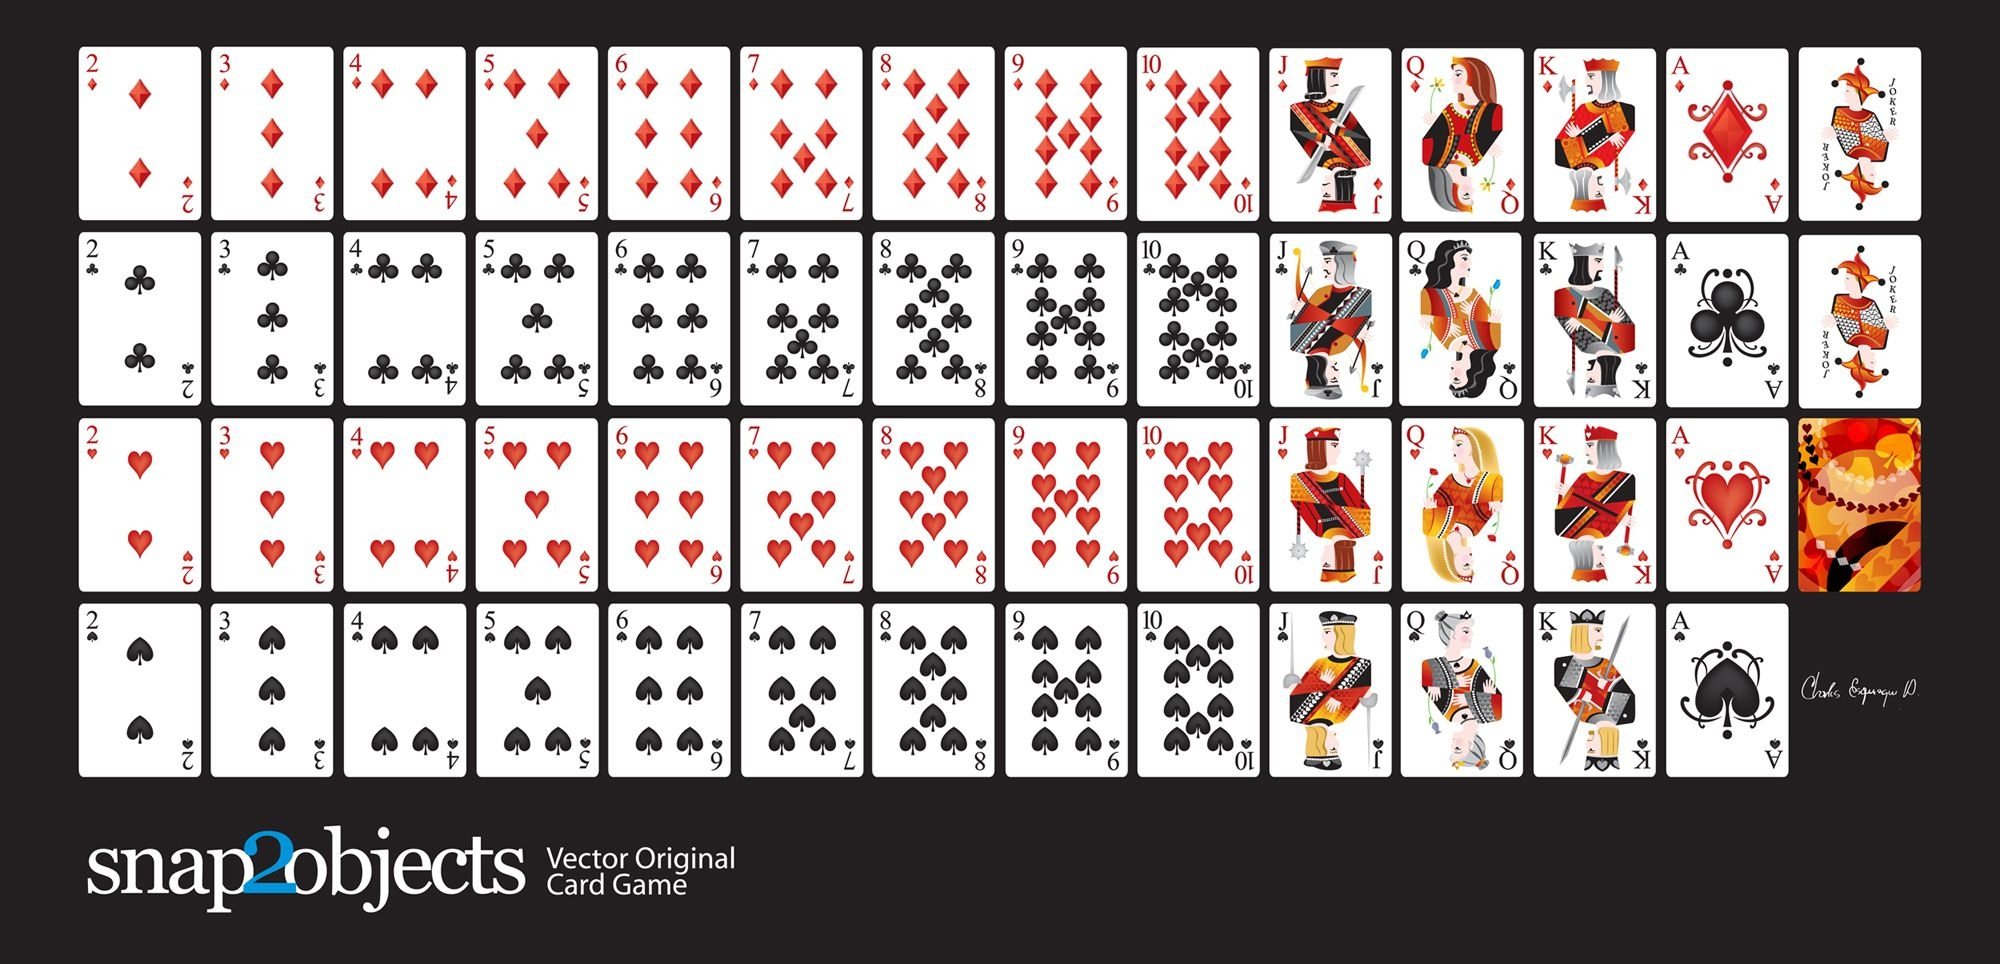 Free-Vector-Card-Deck | Silhouette Cameo | Cards, Printable Playing - Free Printable Deck Of Cards